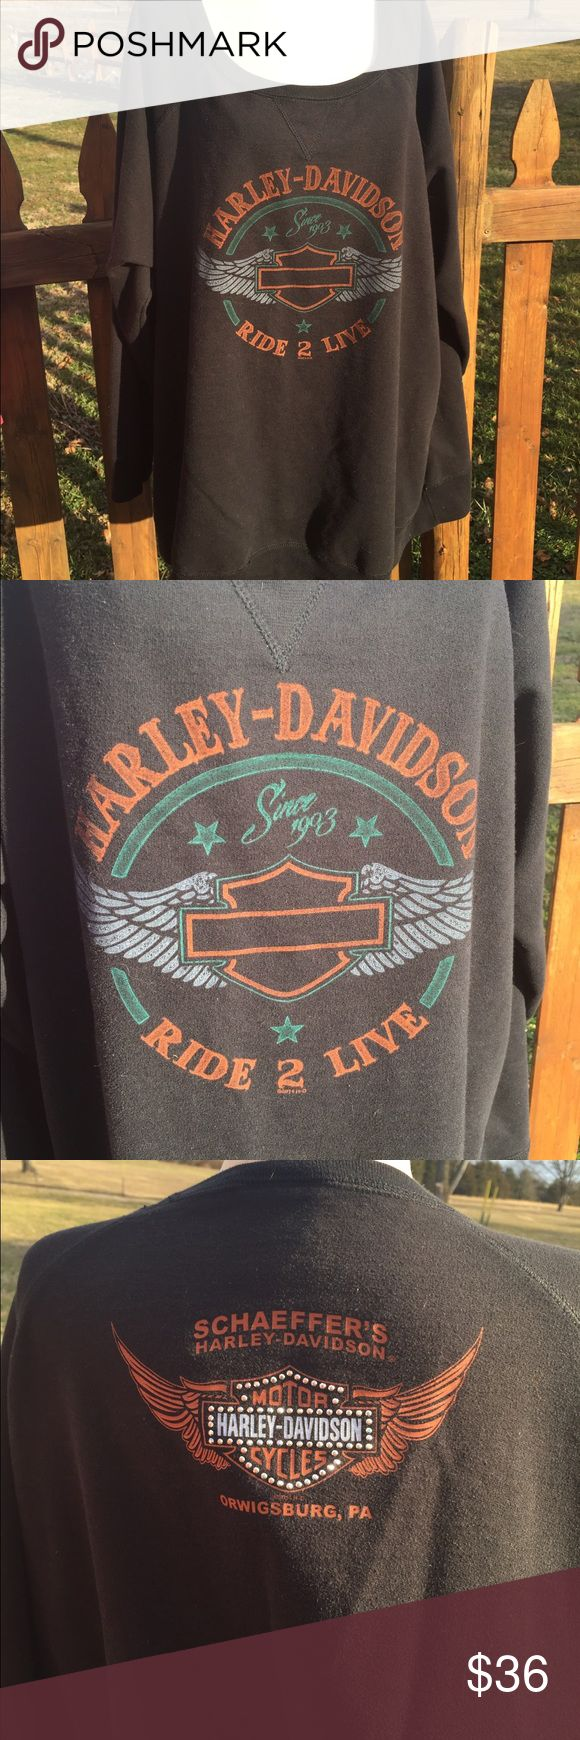 """Harley Davidson Sweatshirt Size 3XL Size tag is missing. Measures: pit to pit: 29"""". Bottom of the collar in the back to the bottom of the shirt: 27"""". Be sure to view the other items in our closet. We offer both women's and Mens items in a variety of sizes. Bundle and save!! Thank you for viewing our item!! Harley-Davidson Tops Sweatshirts & Hoodies"""